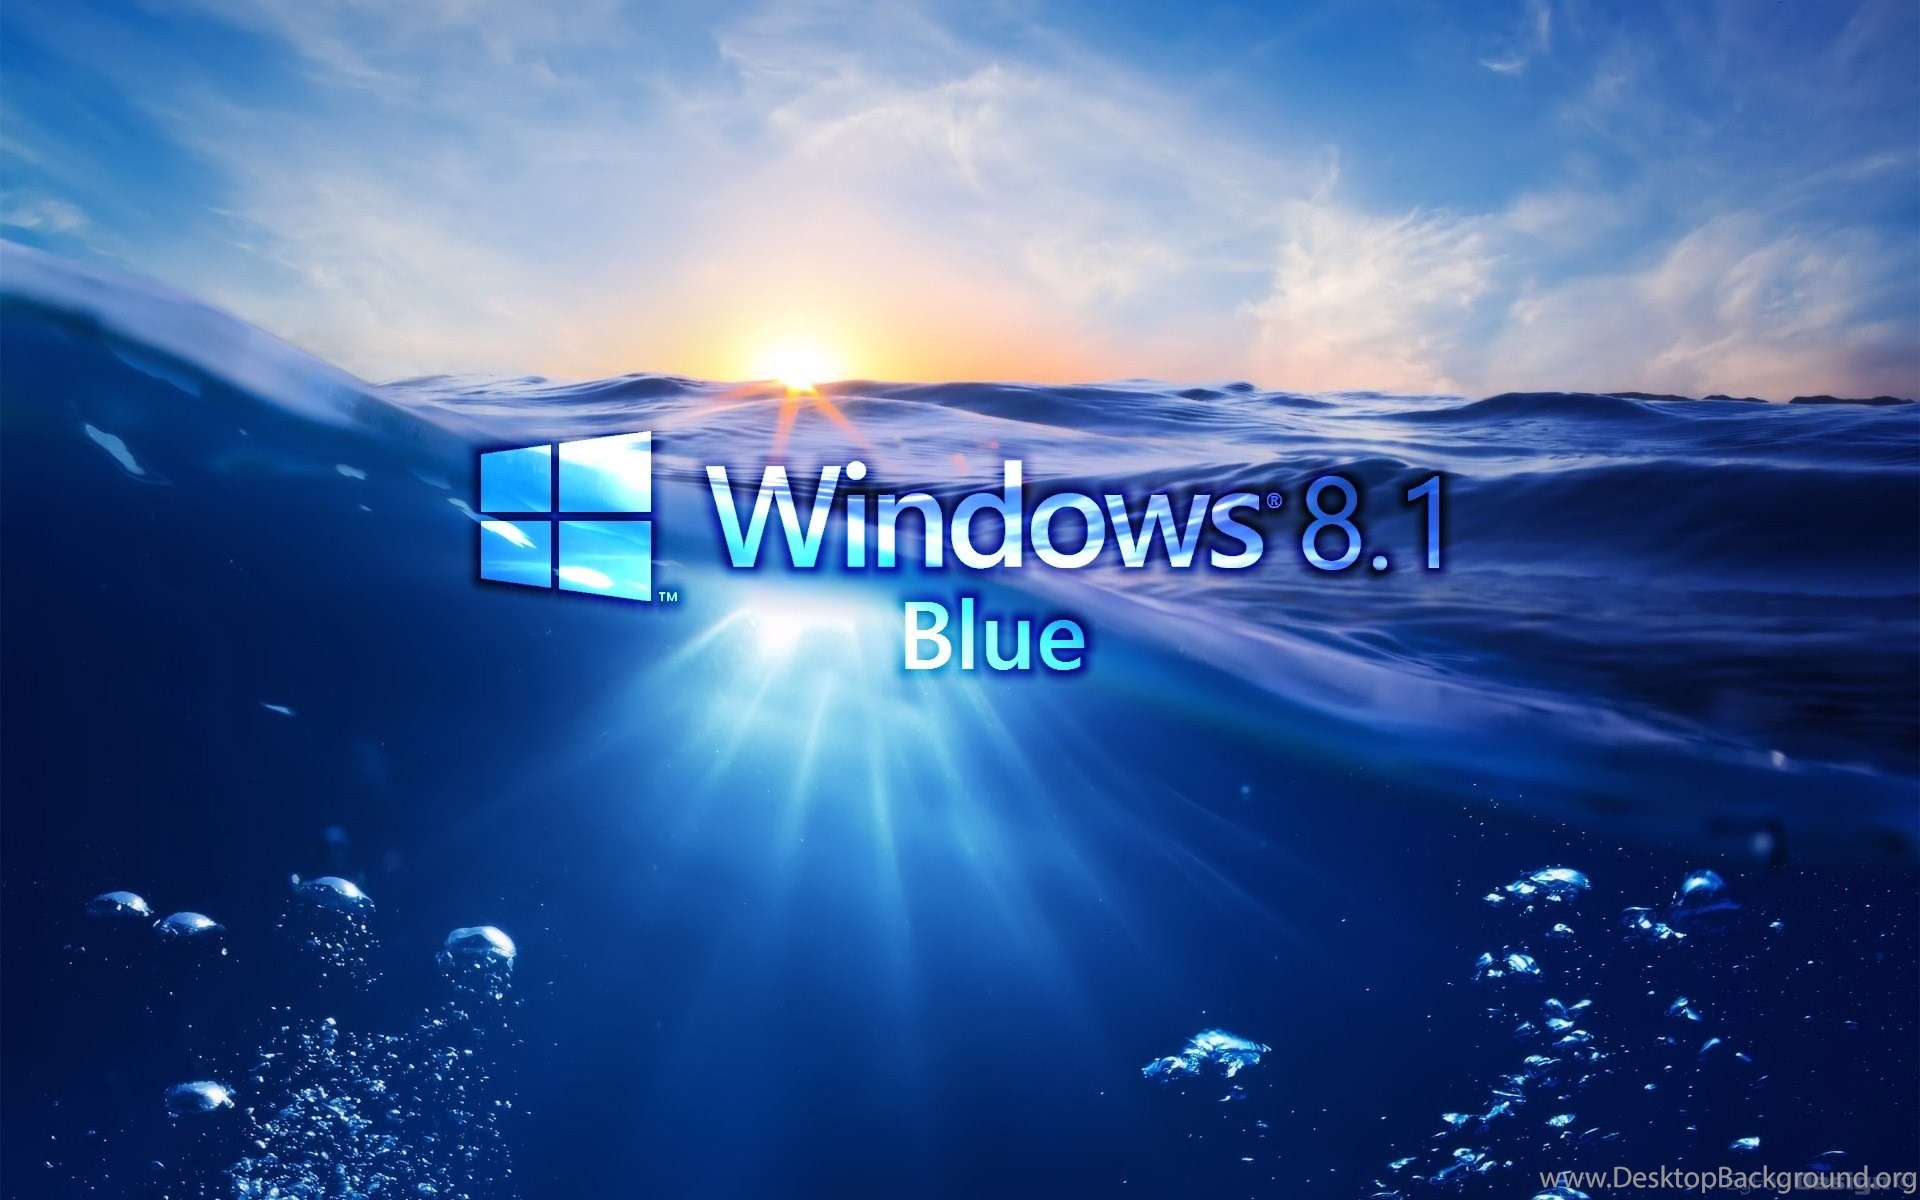 hd wallpapers for windows 8.1 desktop background